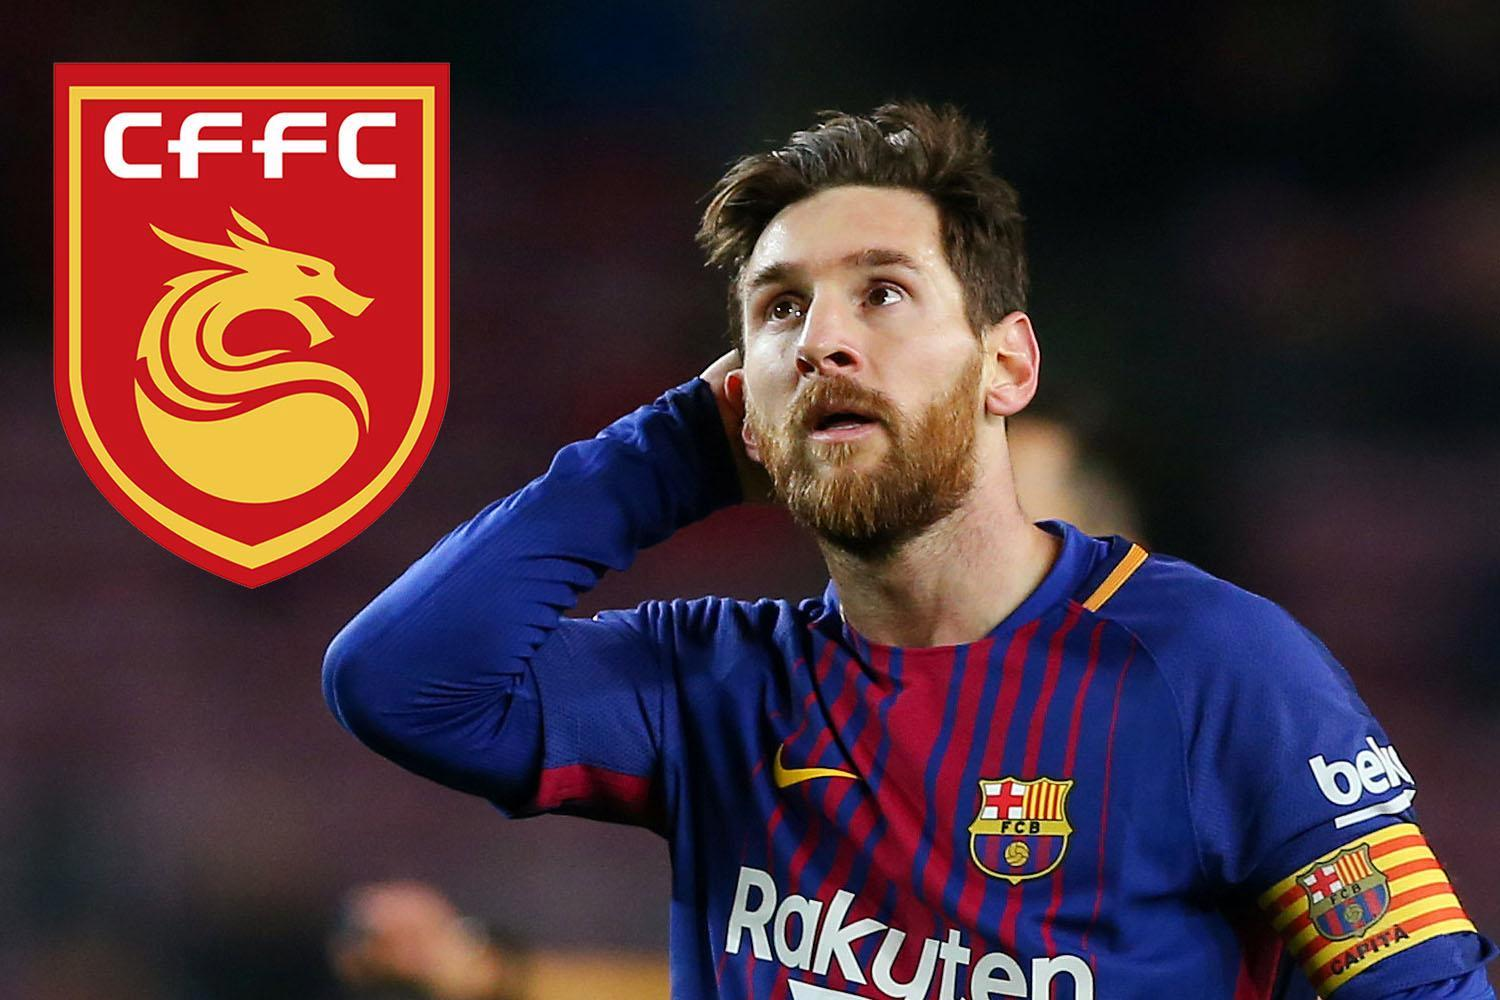 Chinese Super League side Hebei Fortune preparing Lionel Messi bid with signings of Javier Mascherano and Ezequiel Lavezzi — after he rejected £1.7million-a-week contract